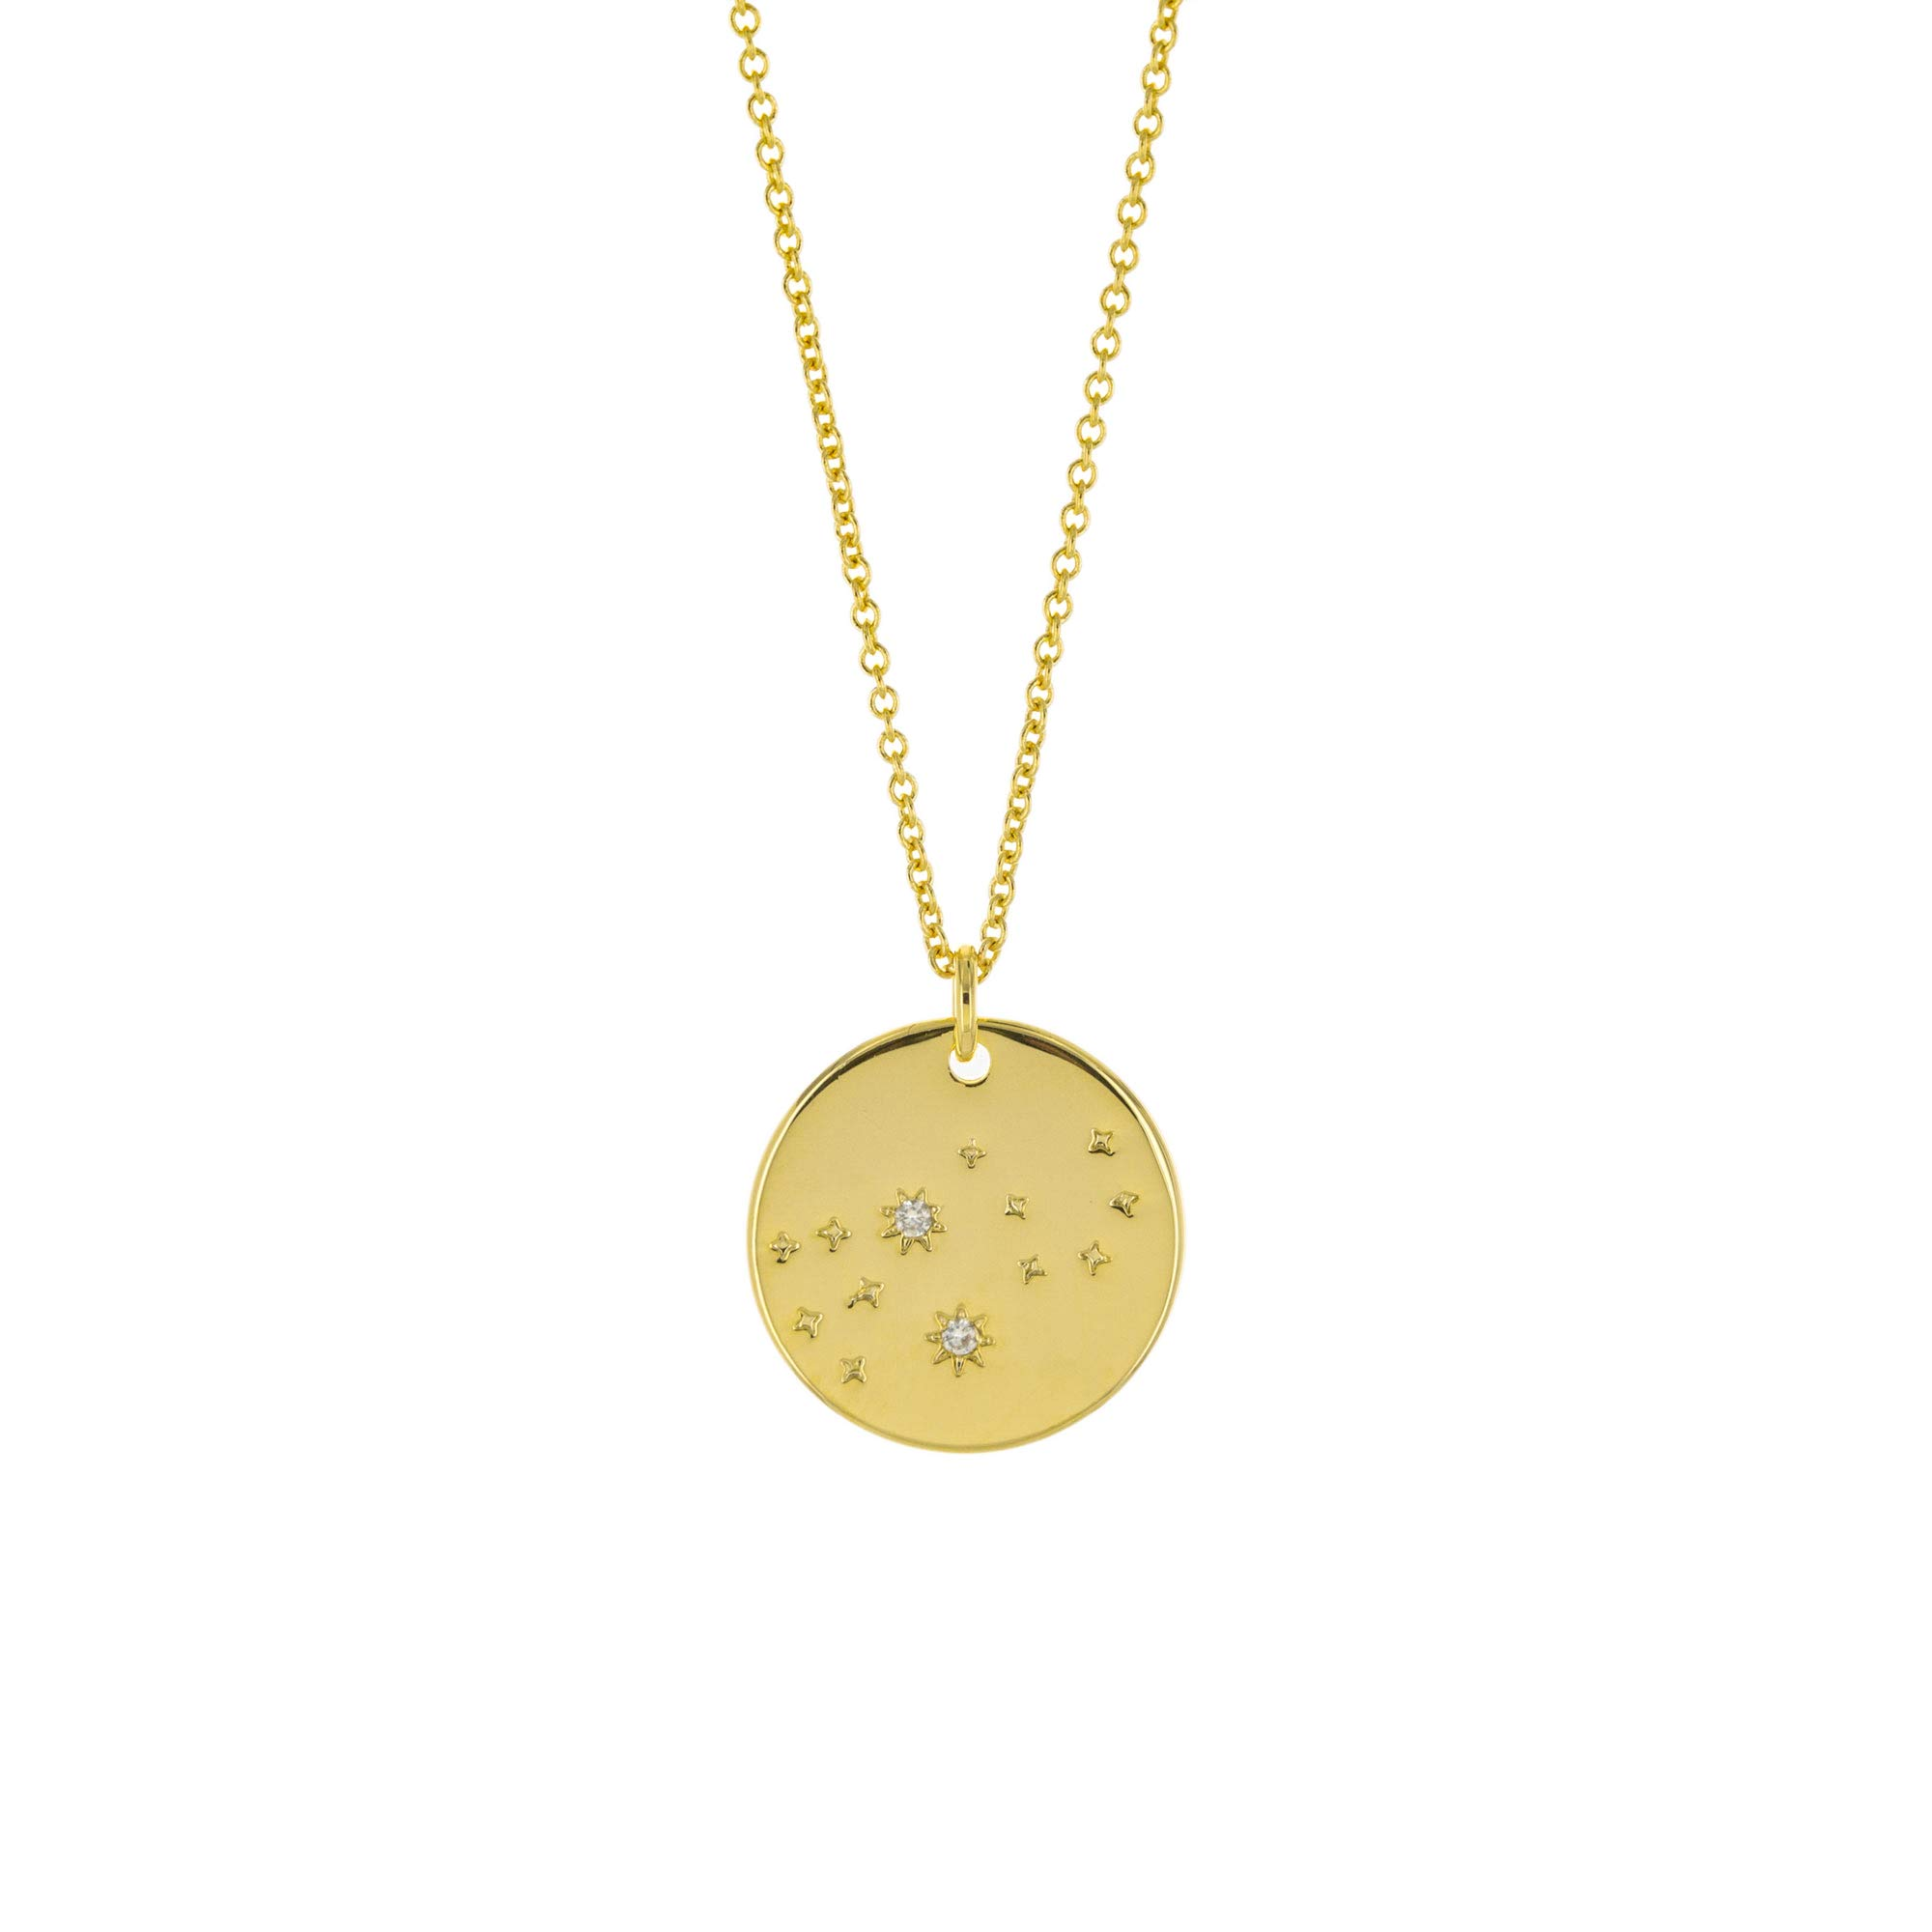 Columbus 14K Gold Plated Astrology Horoscope Constellation Zodiac Coin Necklace (Virgo)